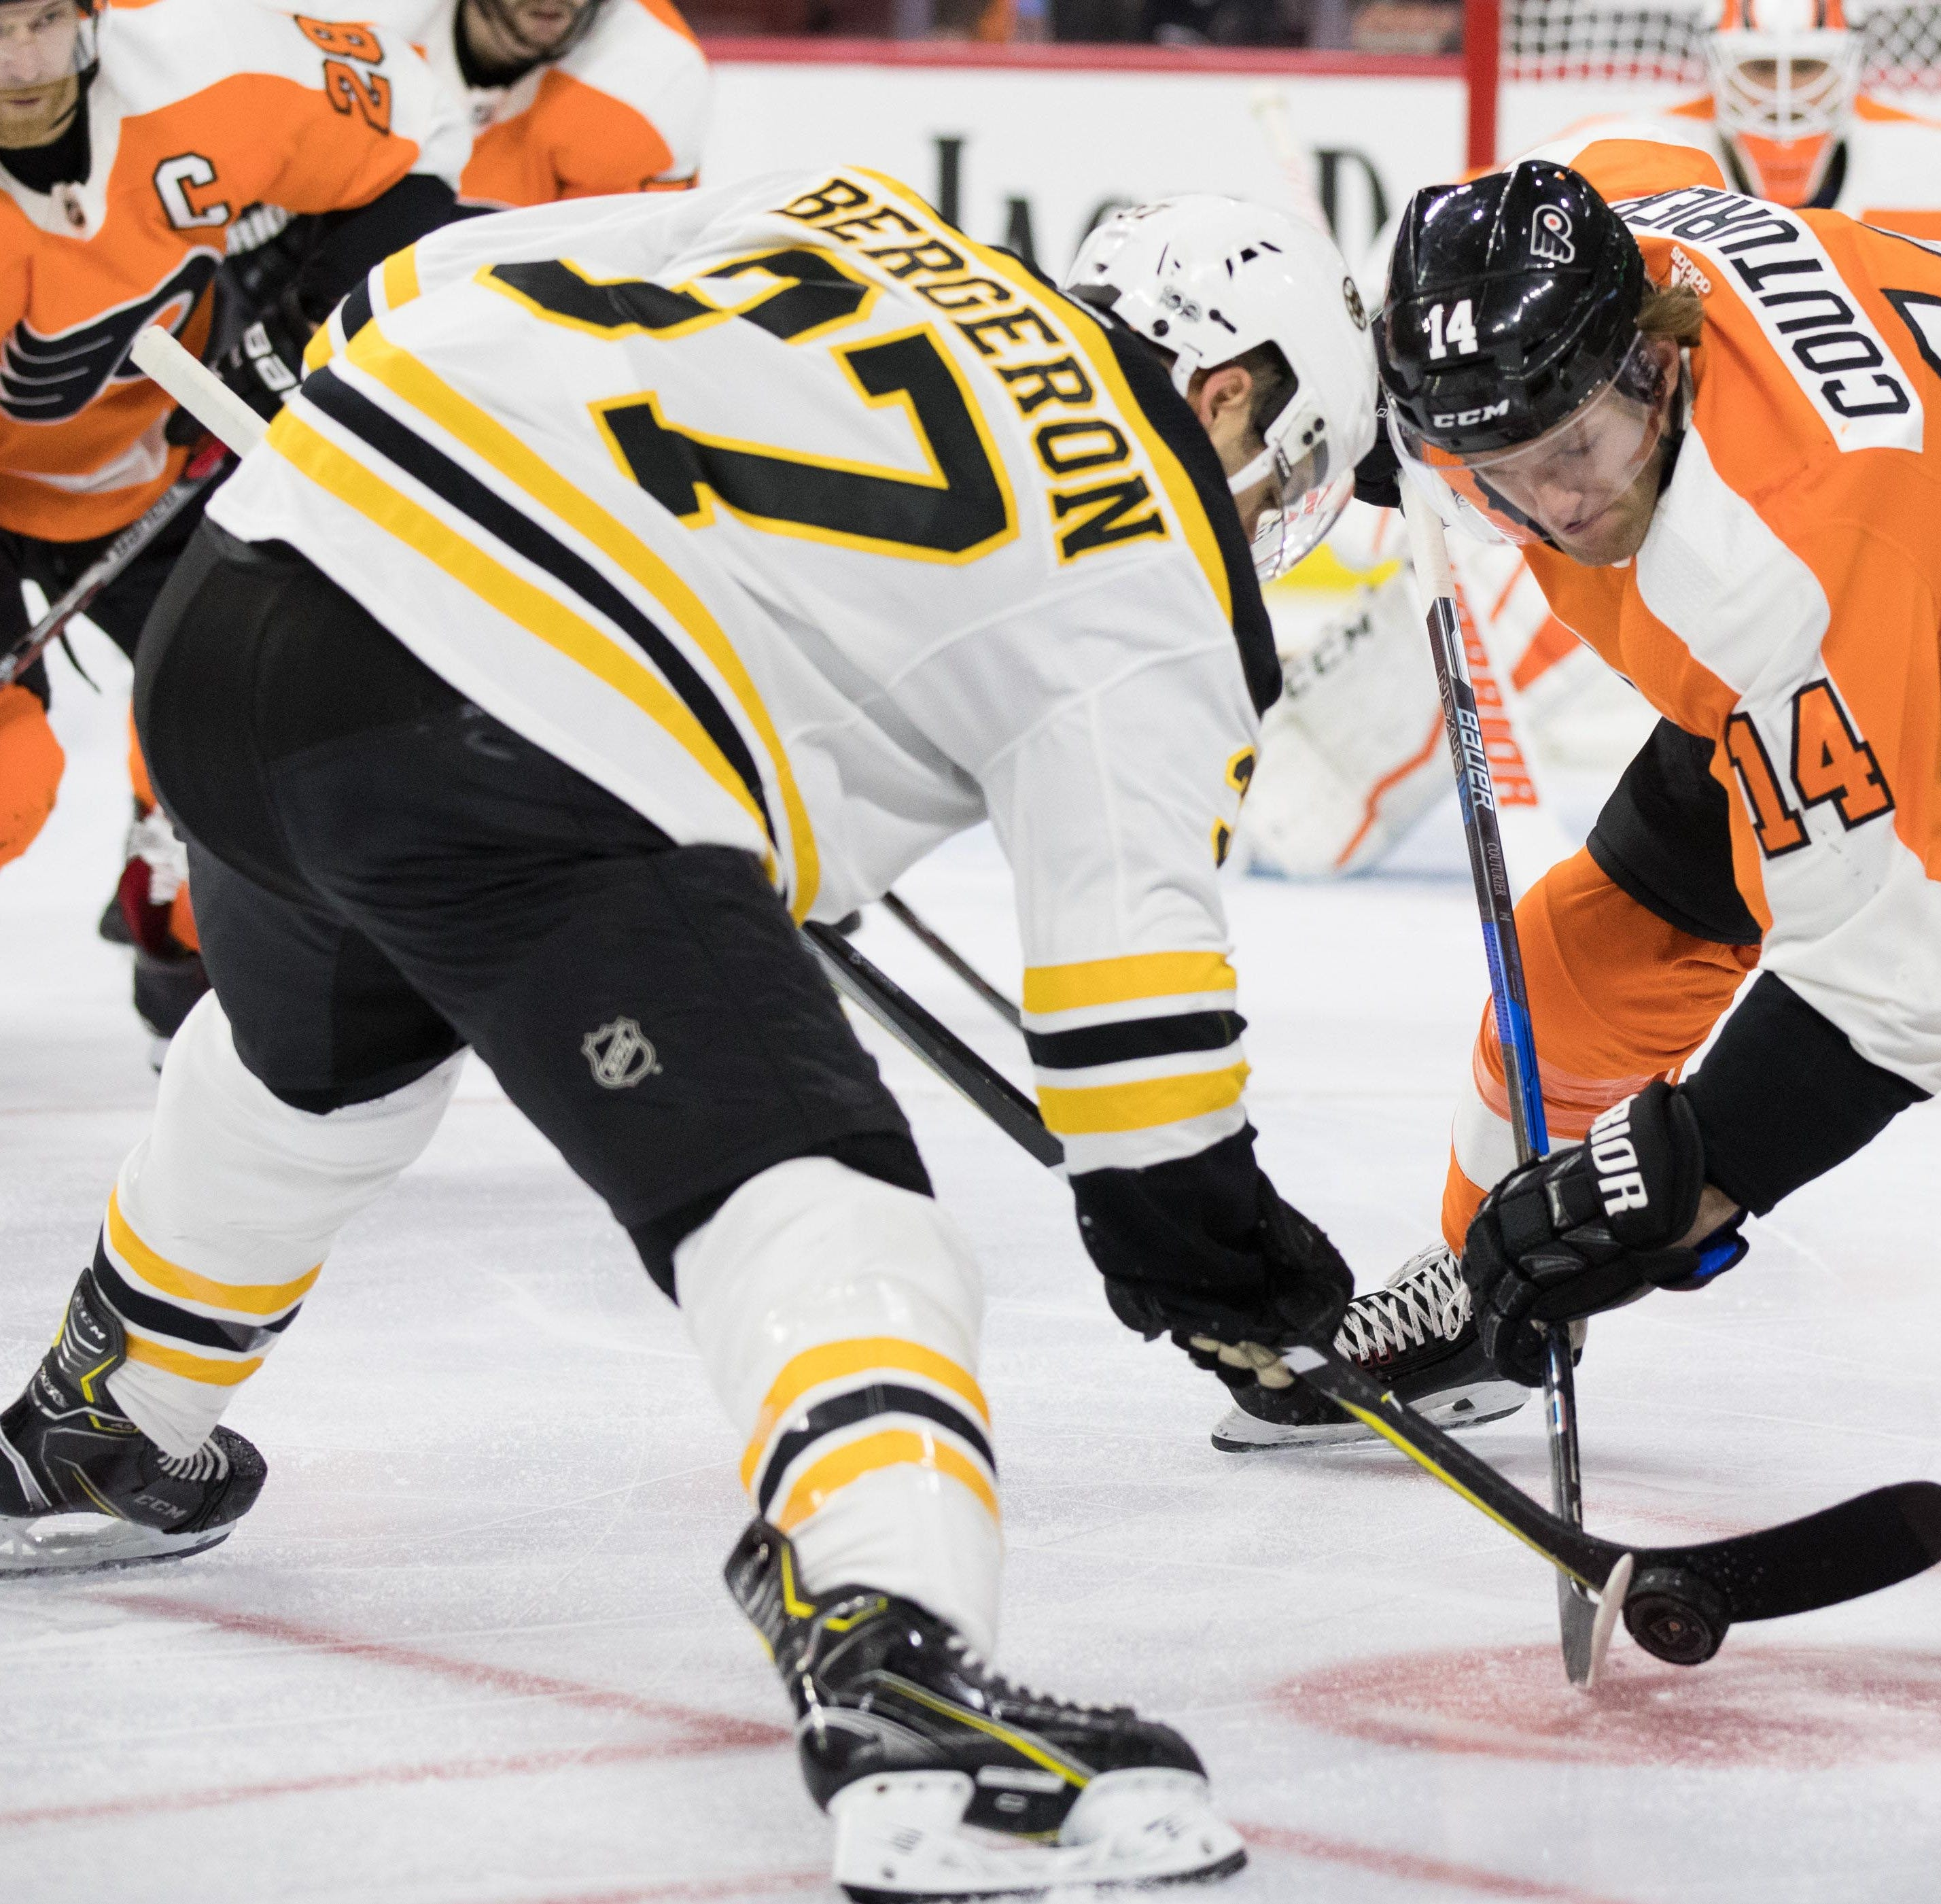 Selke battle for Sean Couturier, Patrice Bergeron goes way back